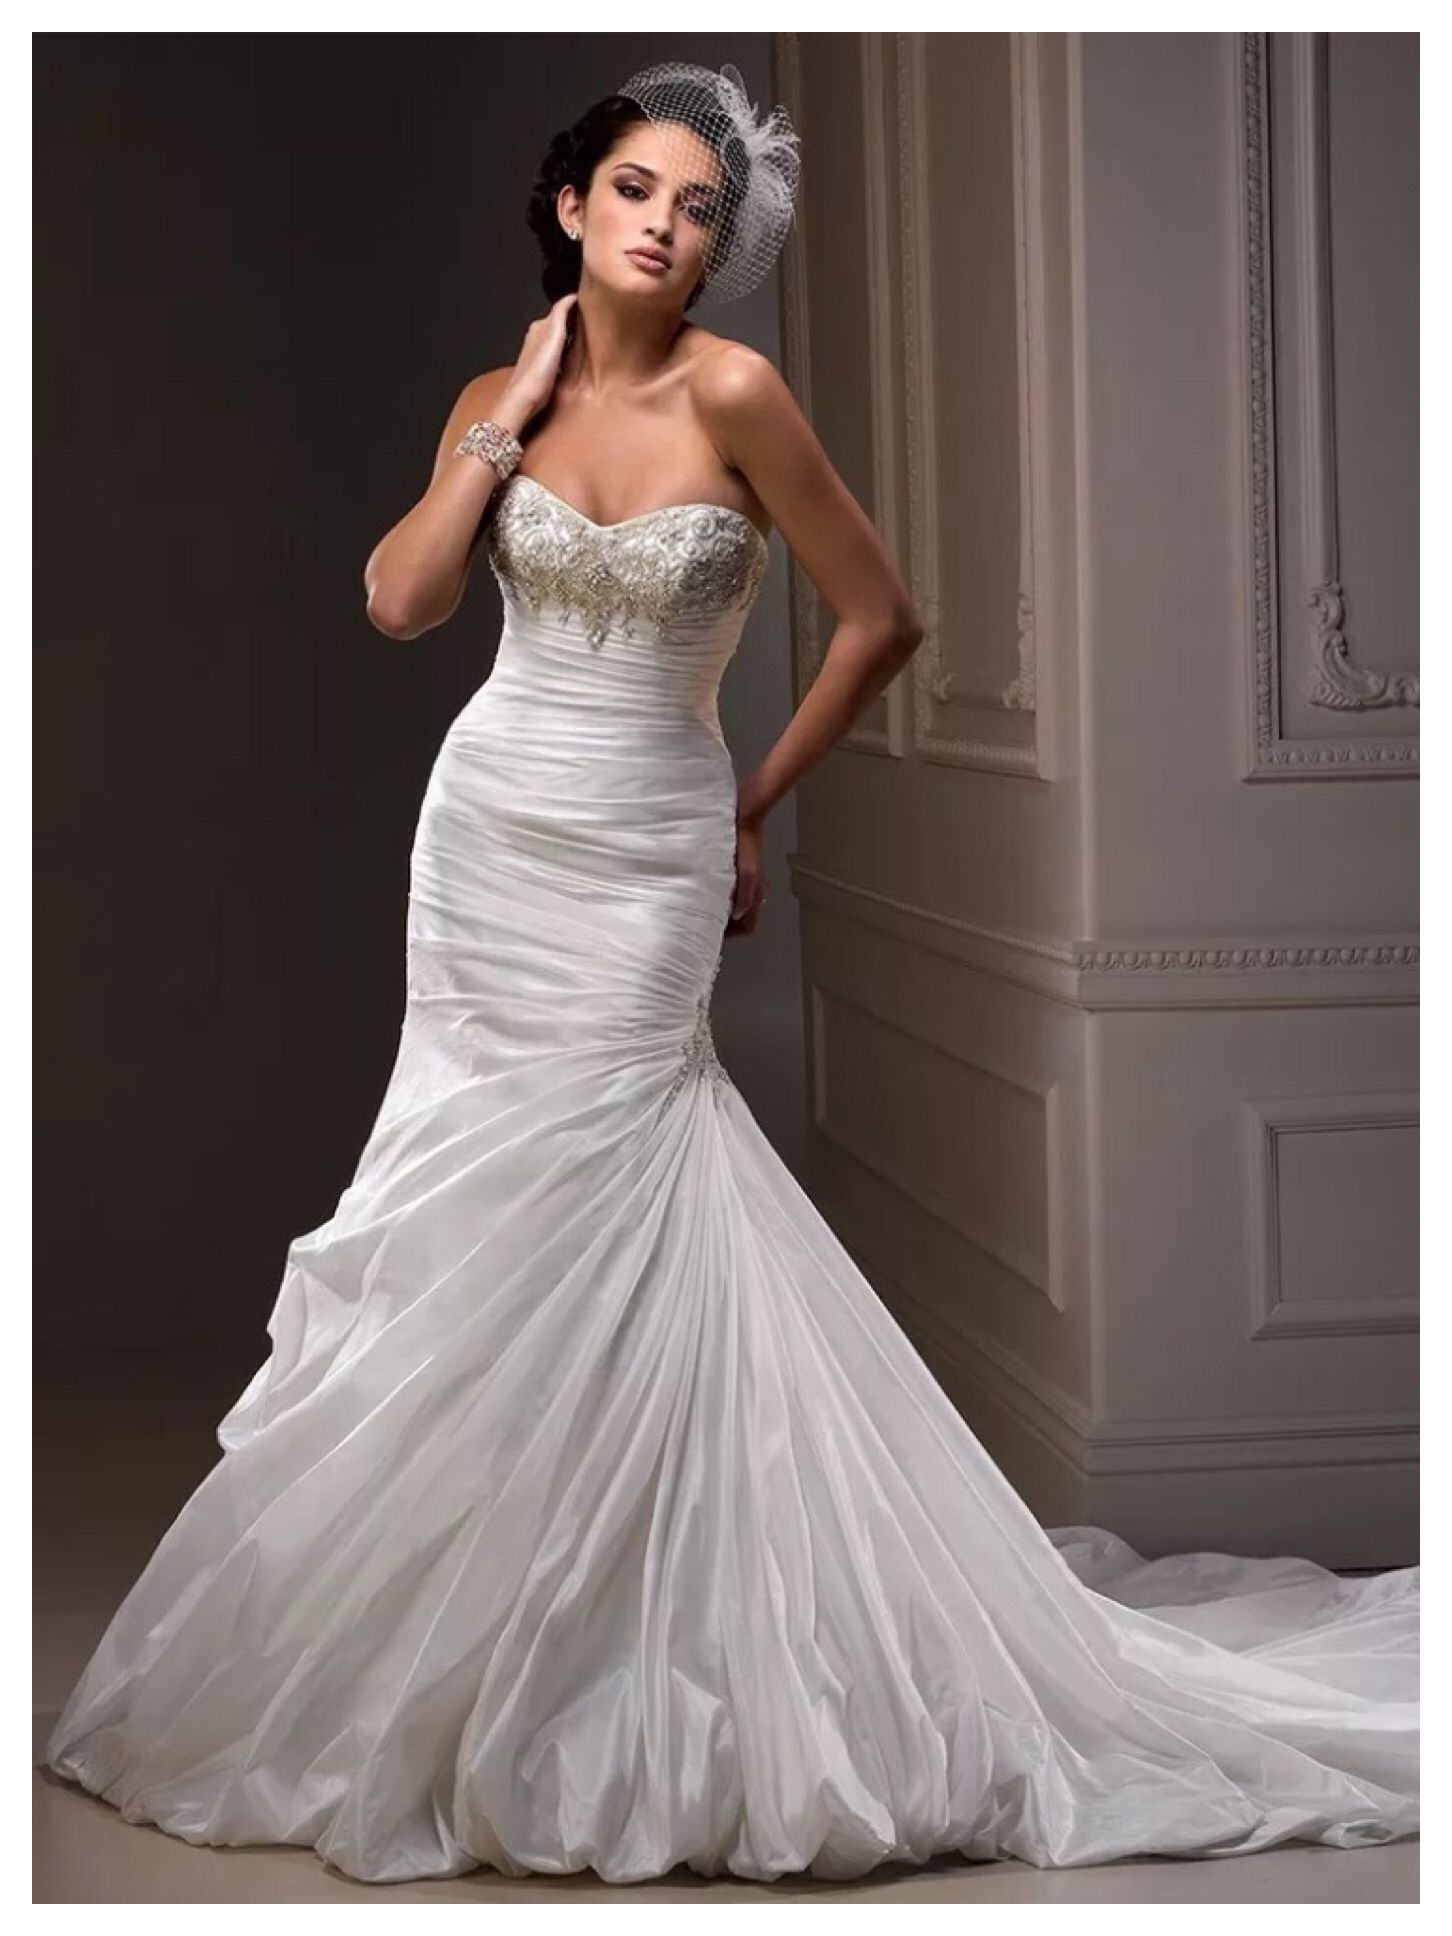 Used wedding dresses near me  Pin by Connie Raven on Wedding GownsFormal Wear  Pinterest